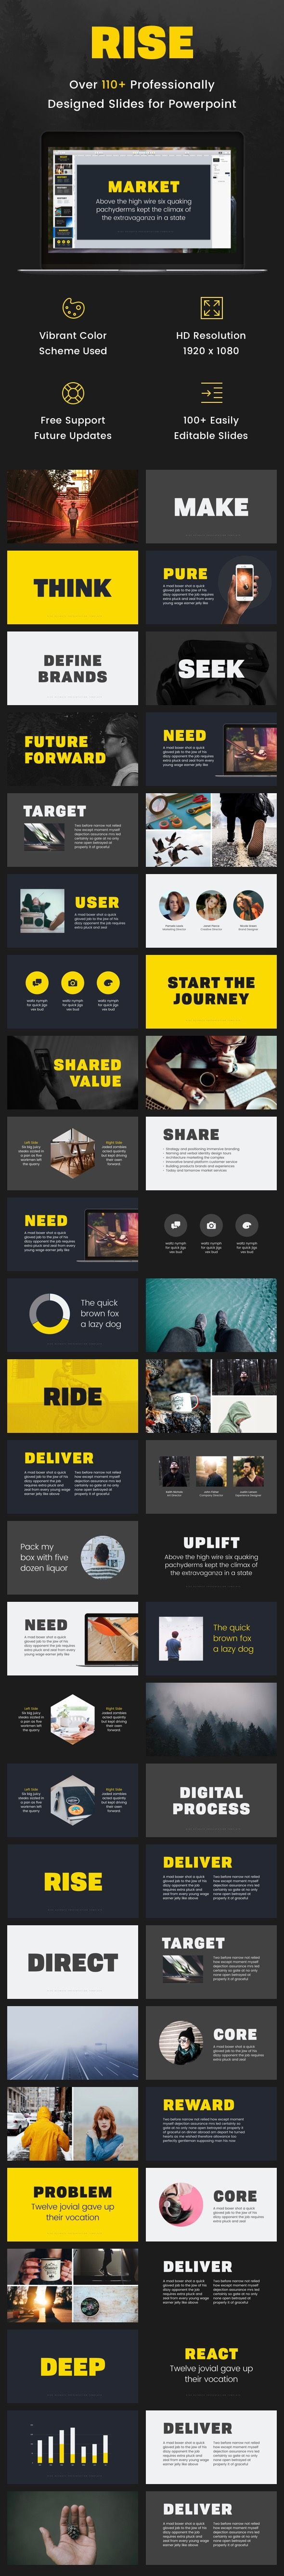 Rise - Powerpoint Presentation Template